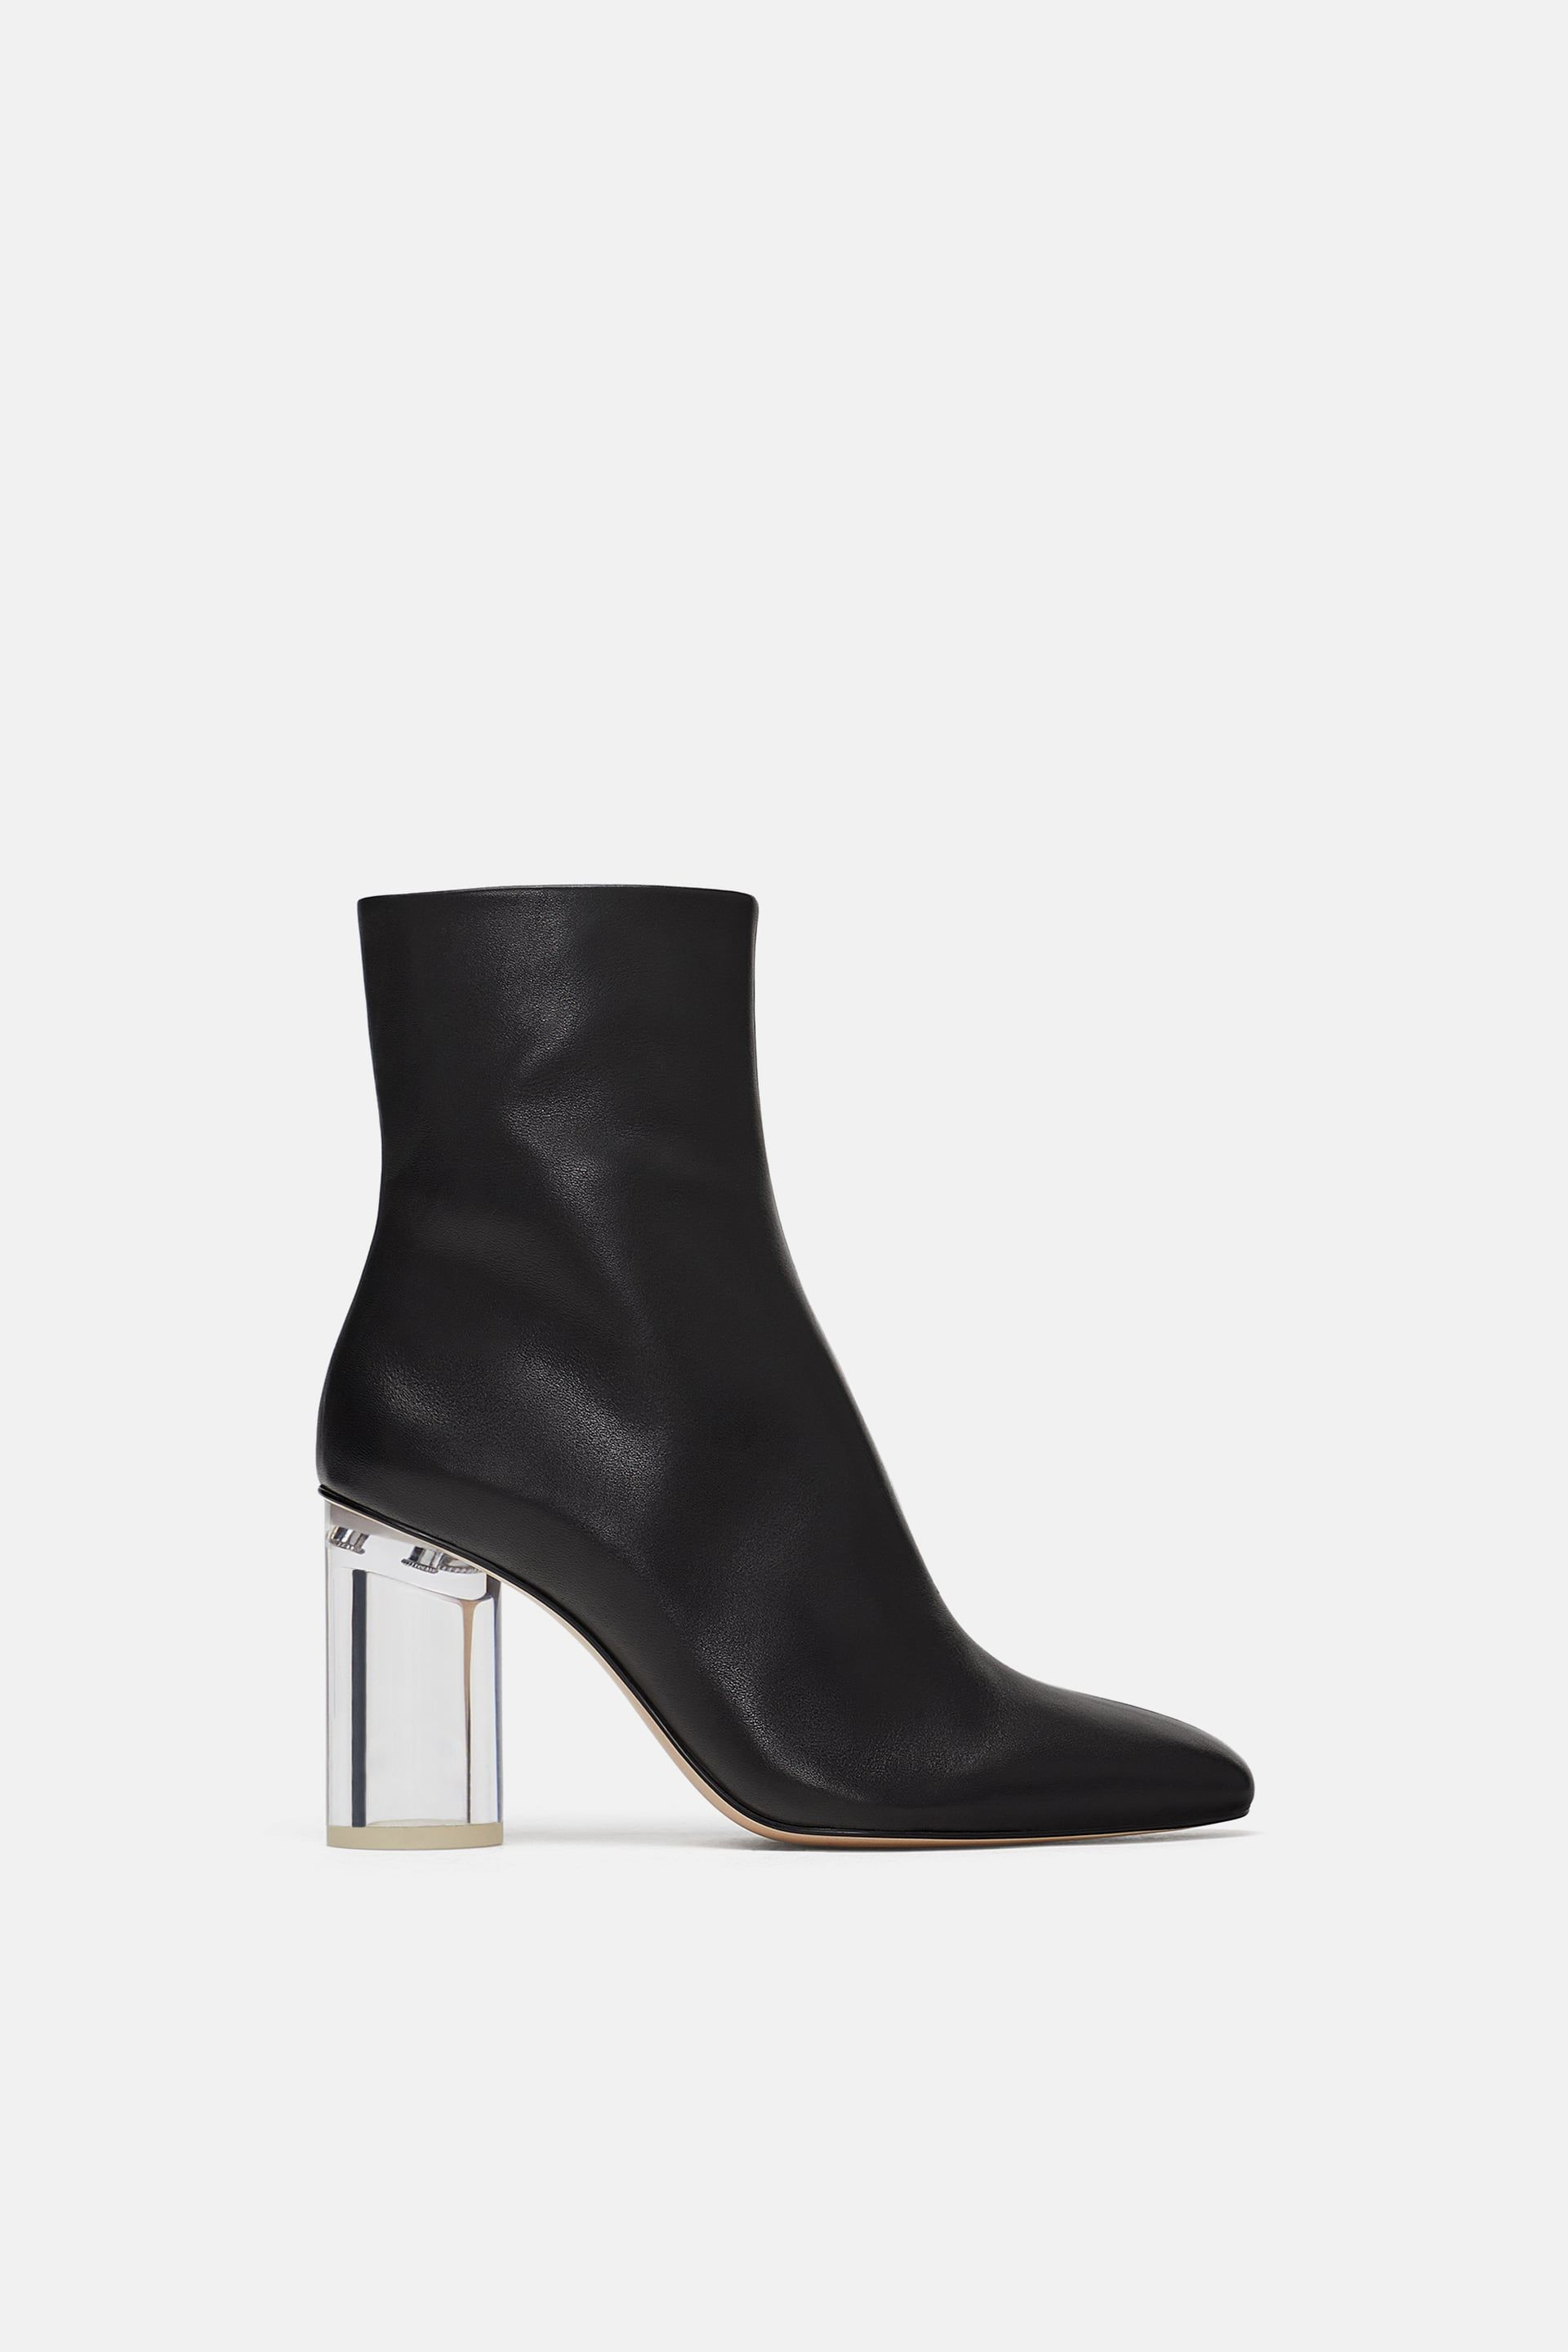 c1b2e13abcb76f Image 2 of LEATHER ANKLE BOOTS WITH TRANSPARENT HEEL from Zara ...